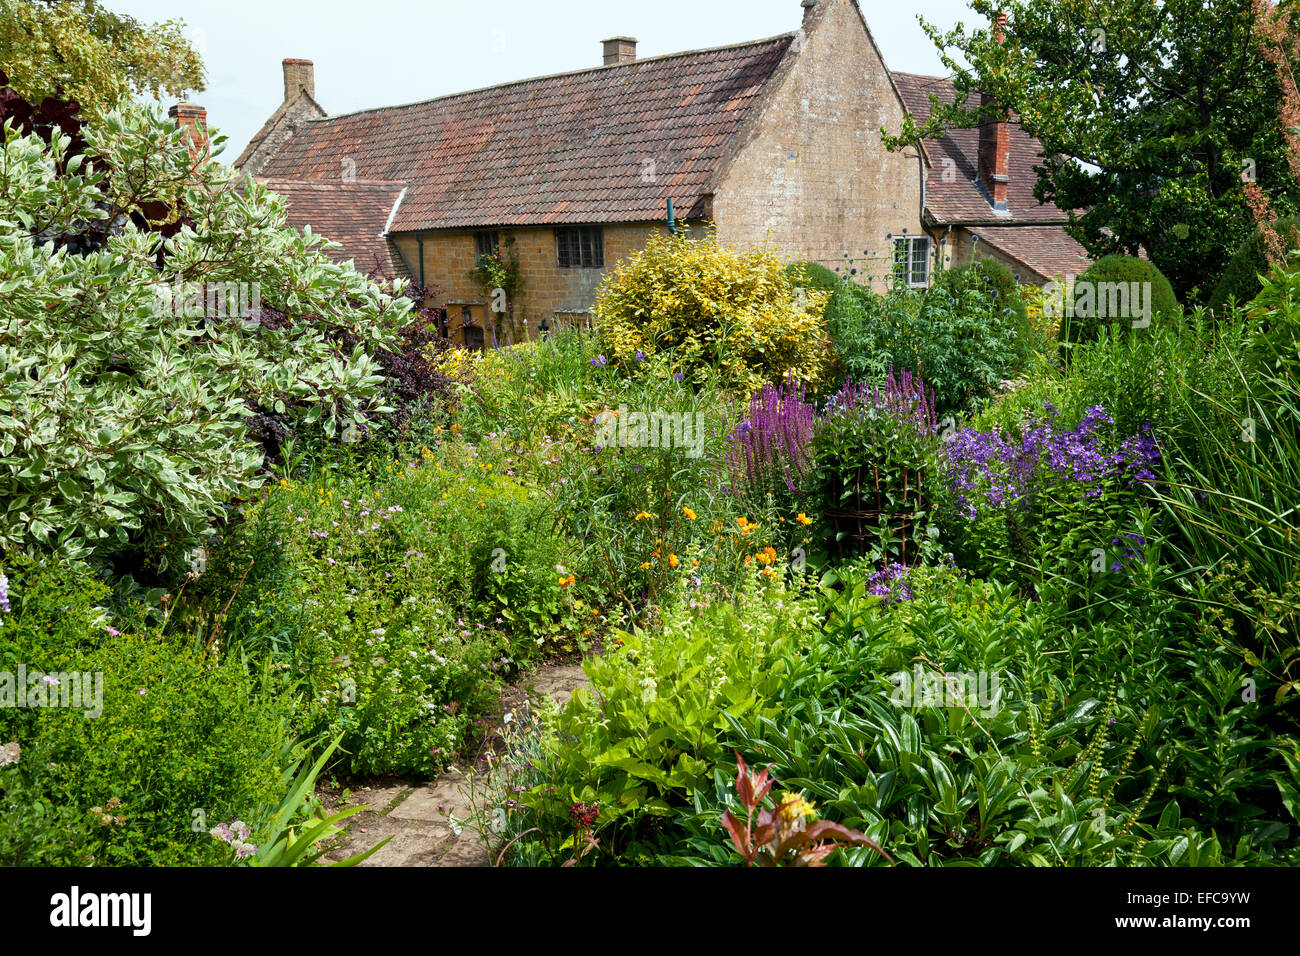 The Margery Fish Cottage Garden at East Lambrook Manor, Somerset, England, UK - Stock Image